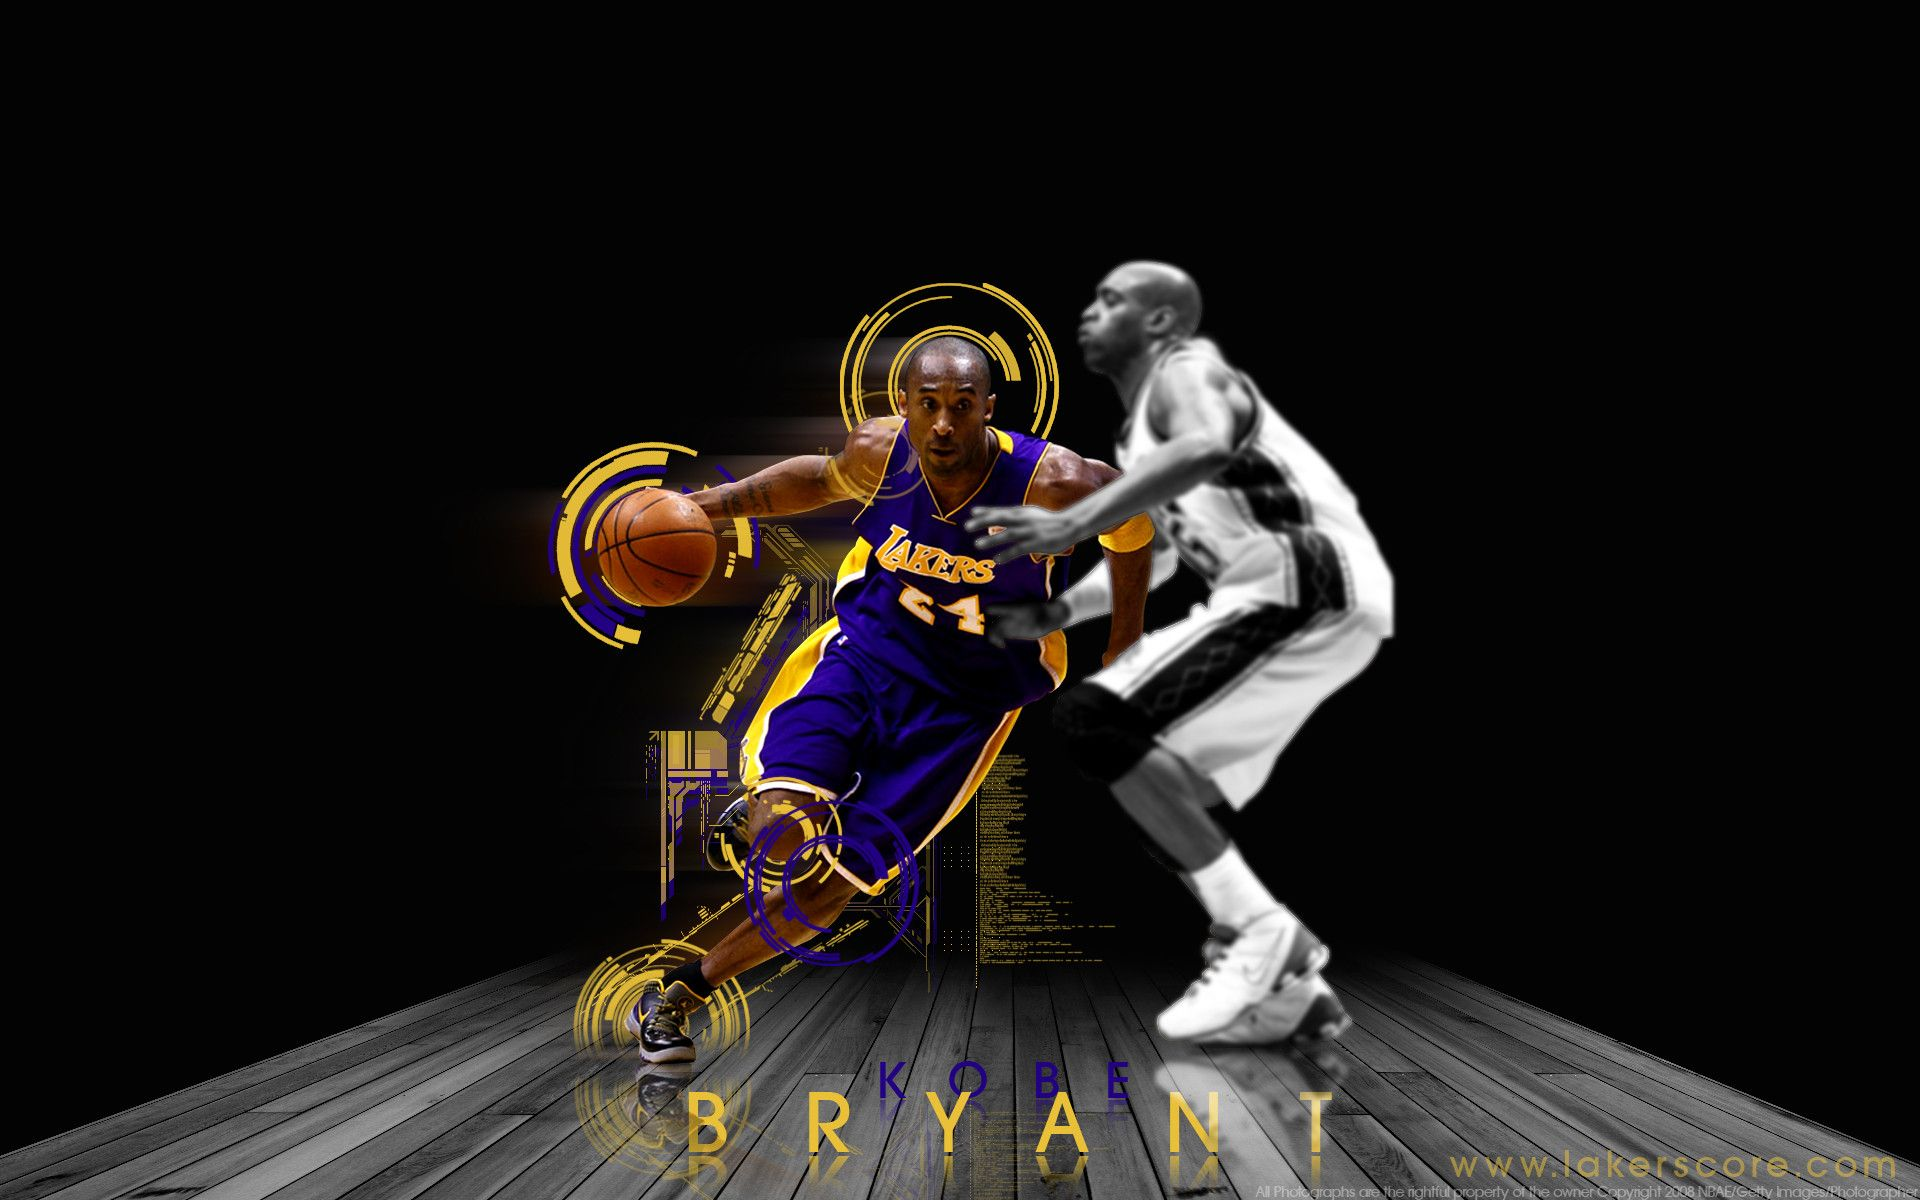 kobe bryant Lakers wallpaper HD wallpapers backgrounds images 1920x1200